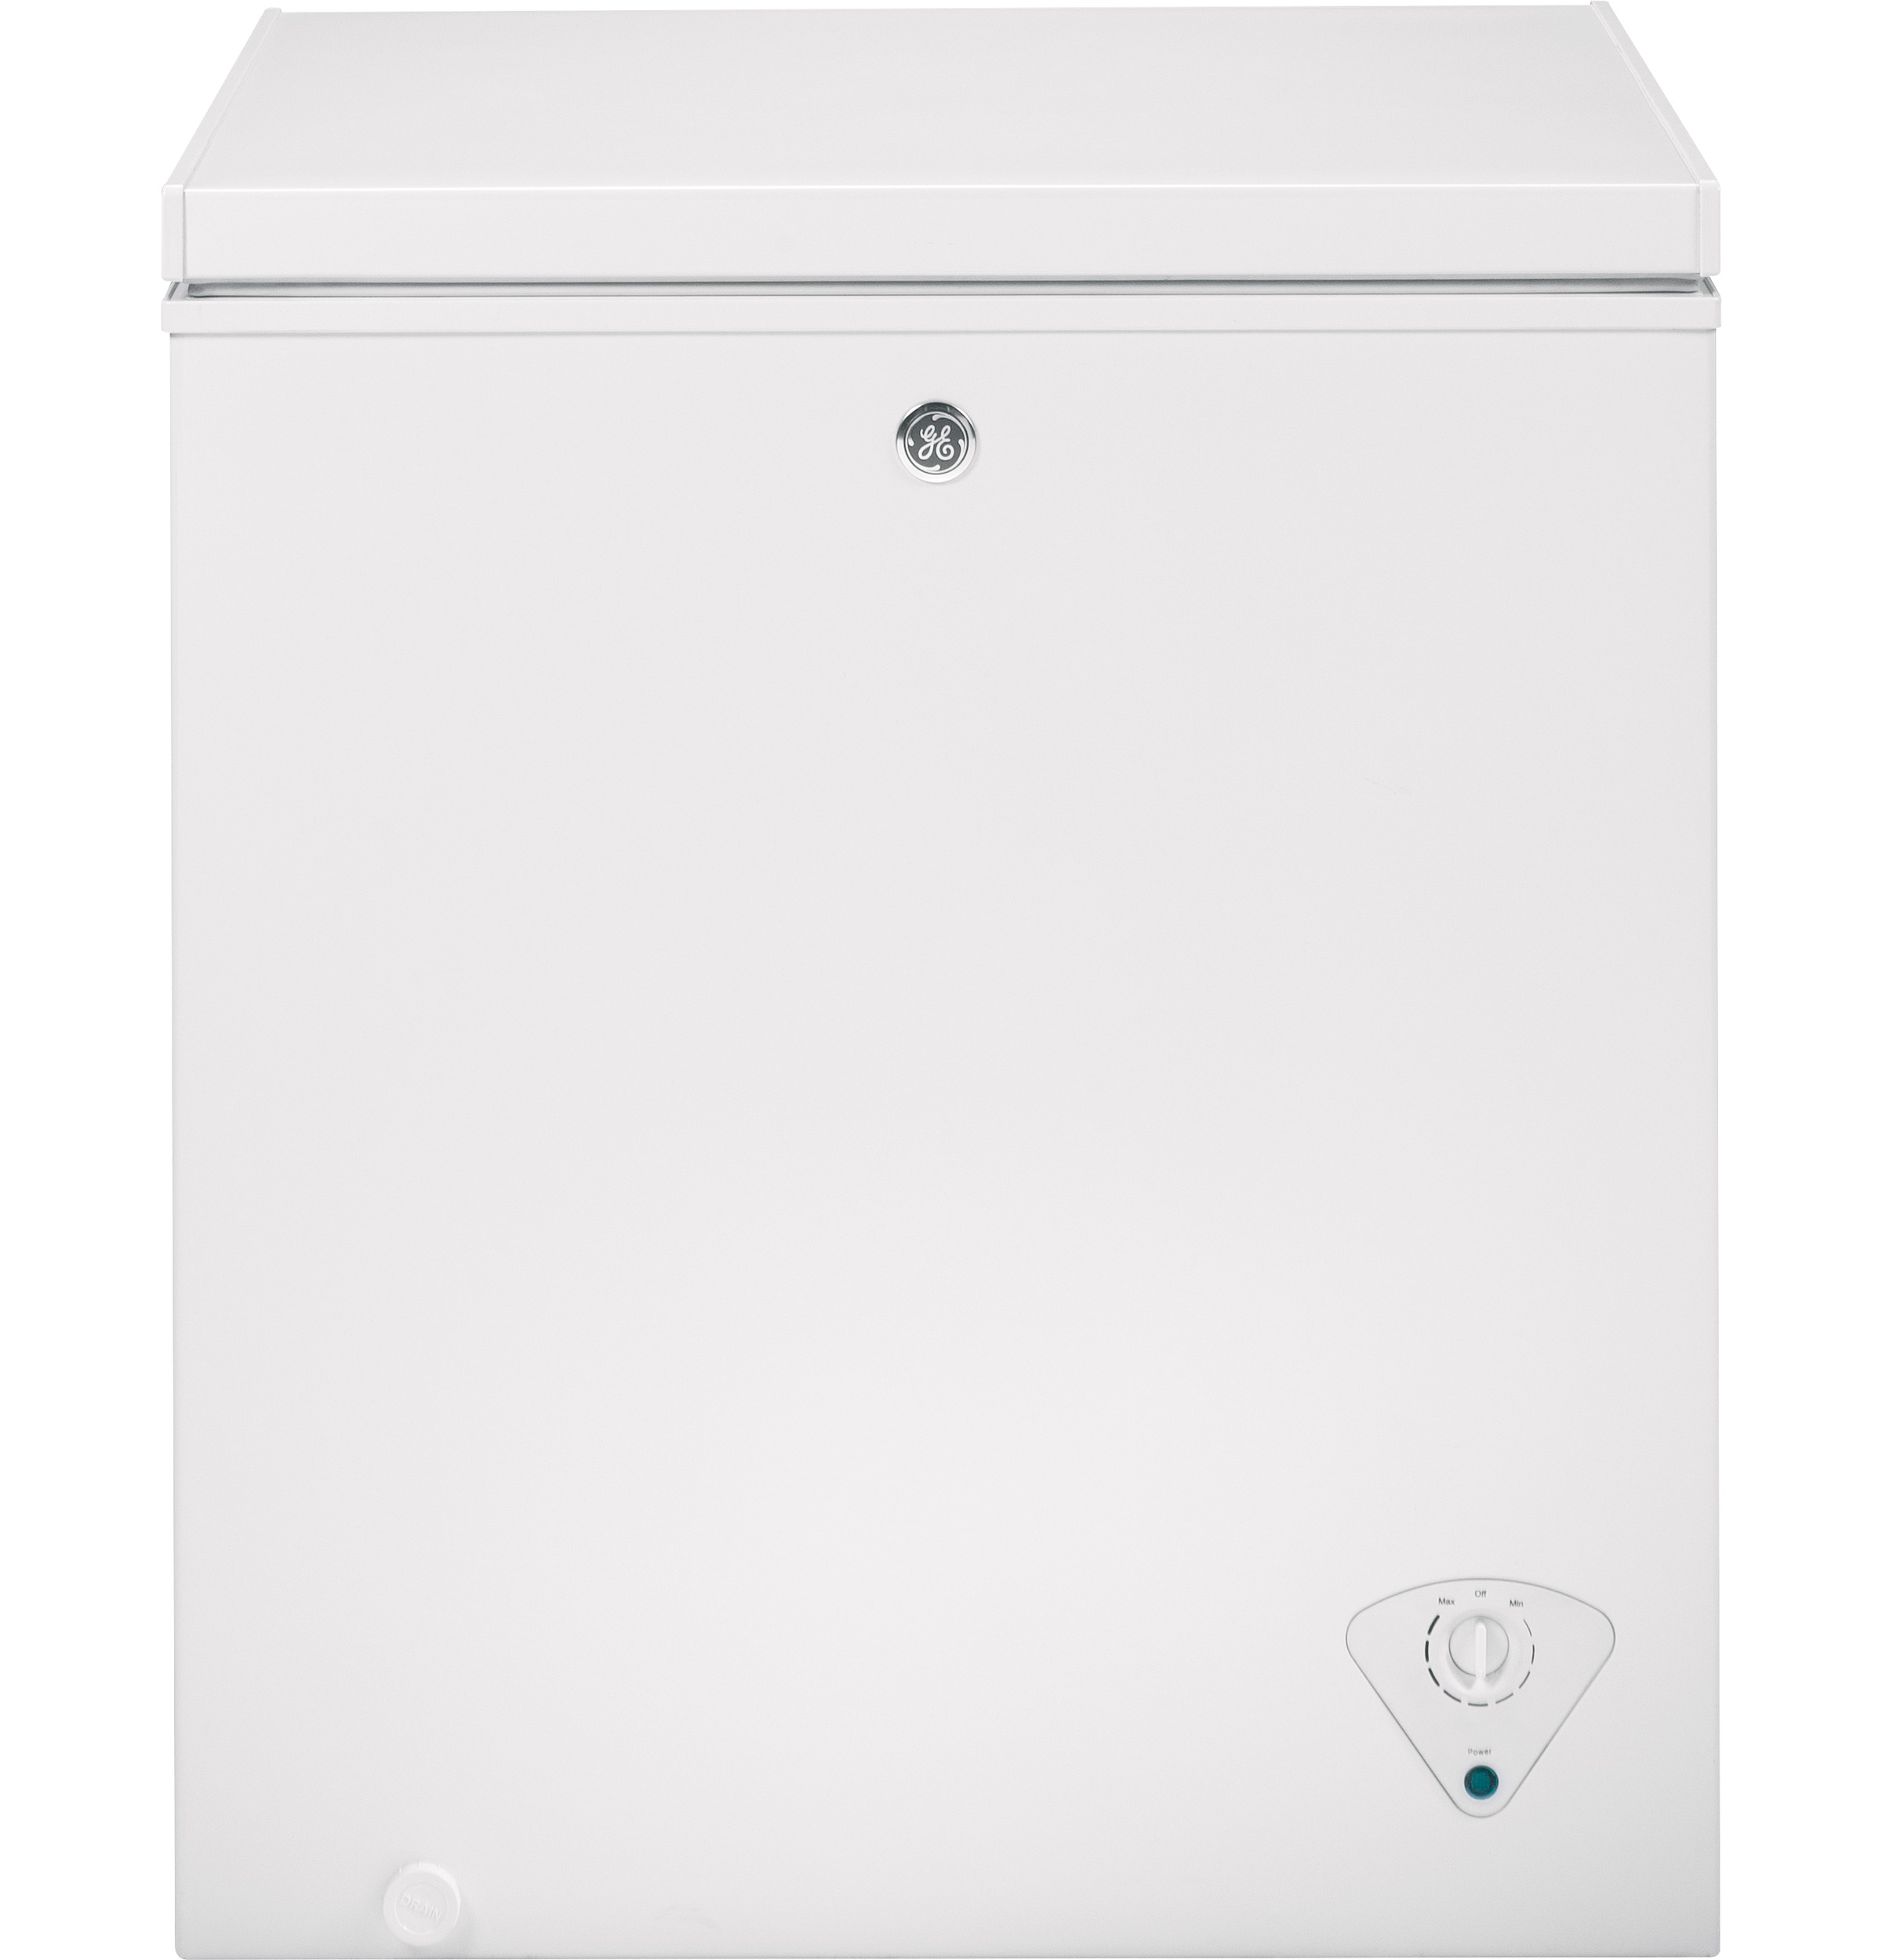 GE GE® 5.0 Cu. Ft. Manual Defrost Chest Freezer